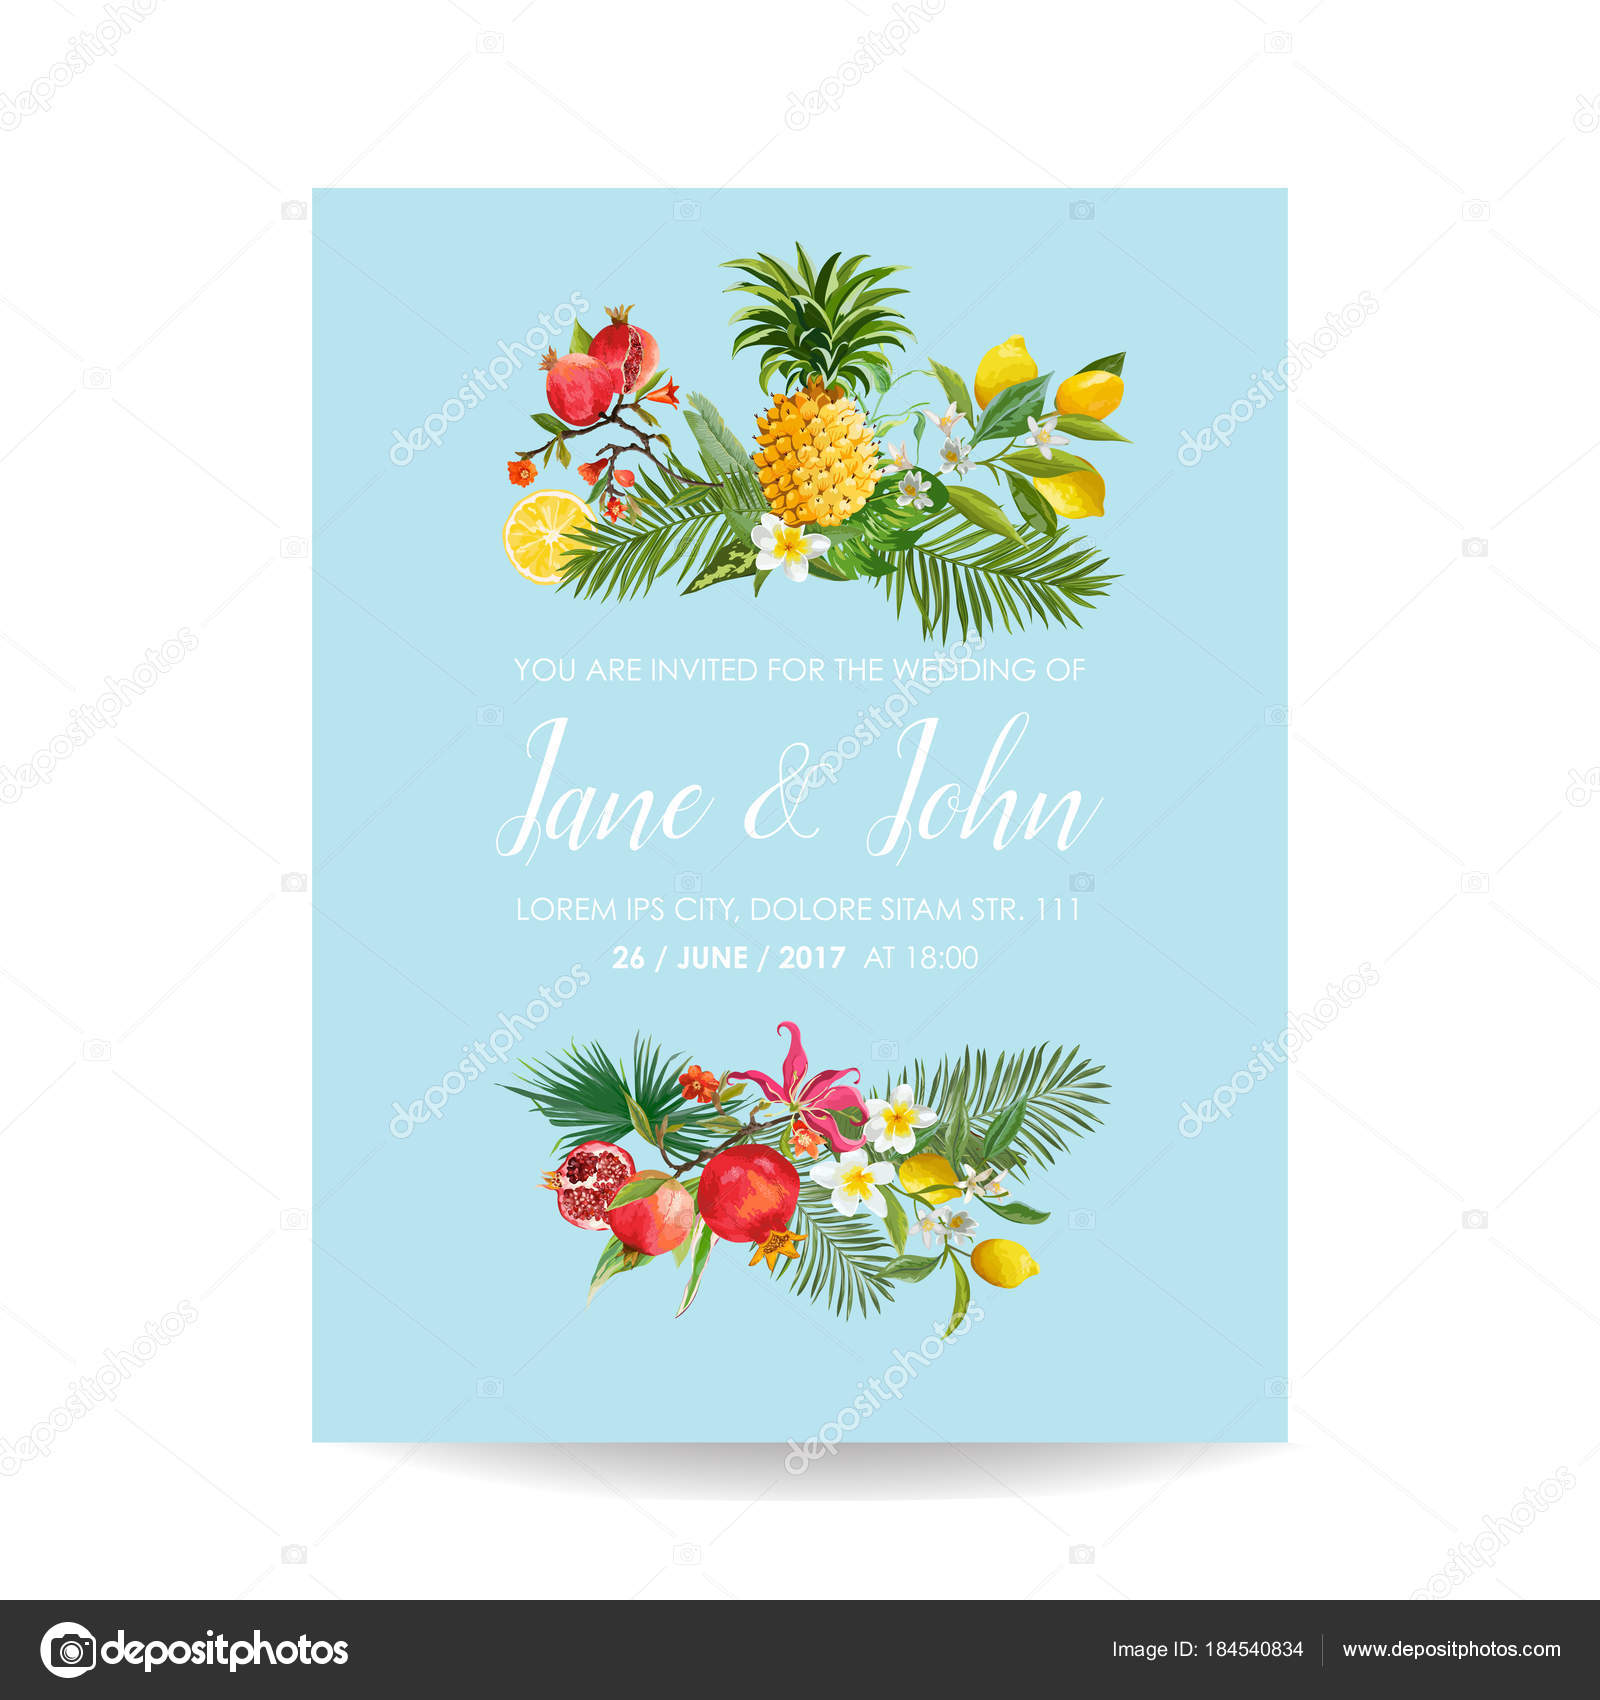 Wedding Invitation With Tropical Fruits And Palm Leaves Greeting